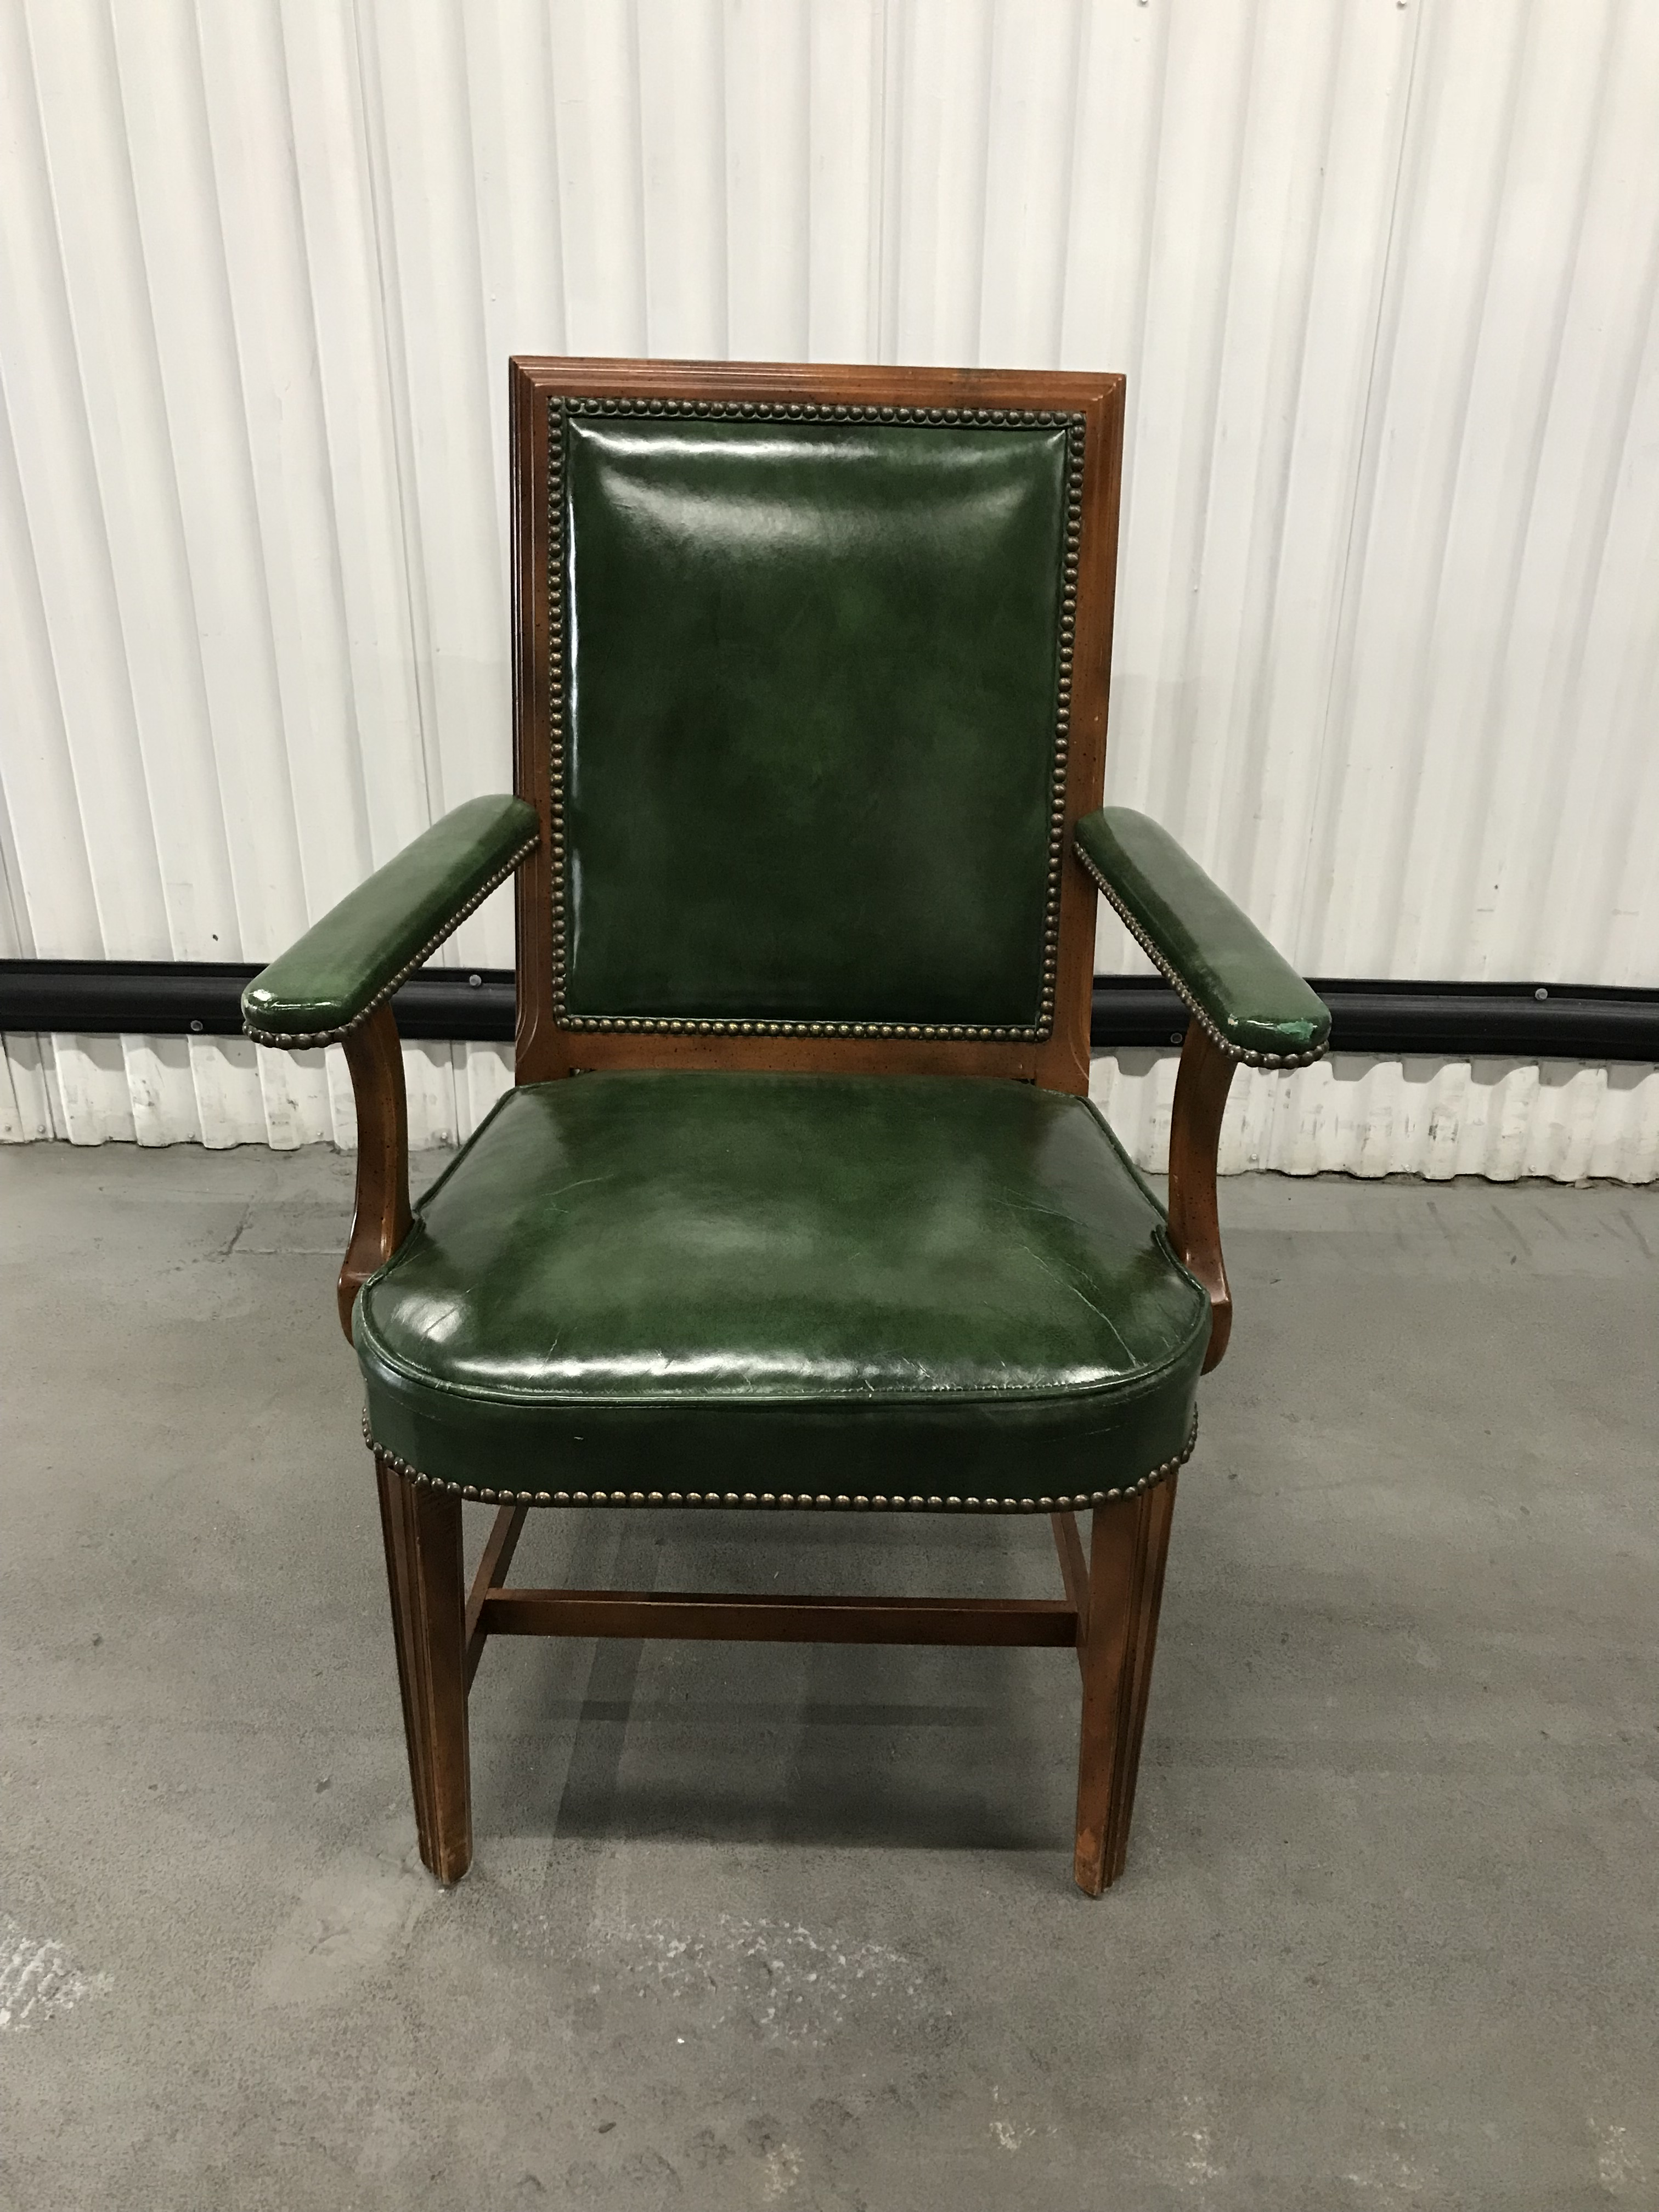 Vintage Kelly Green Leather Armchair With Brass Tacks | Chairish